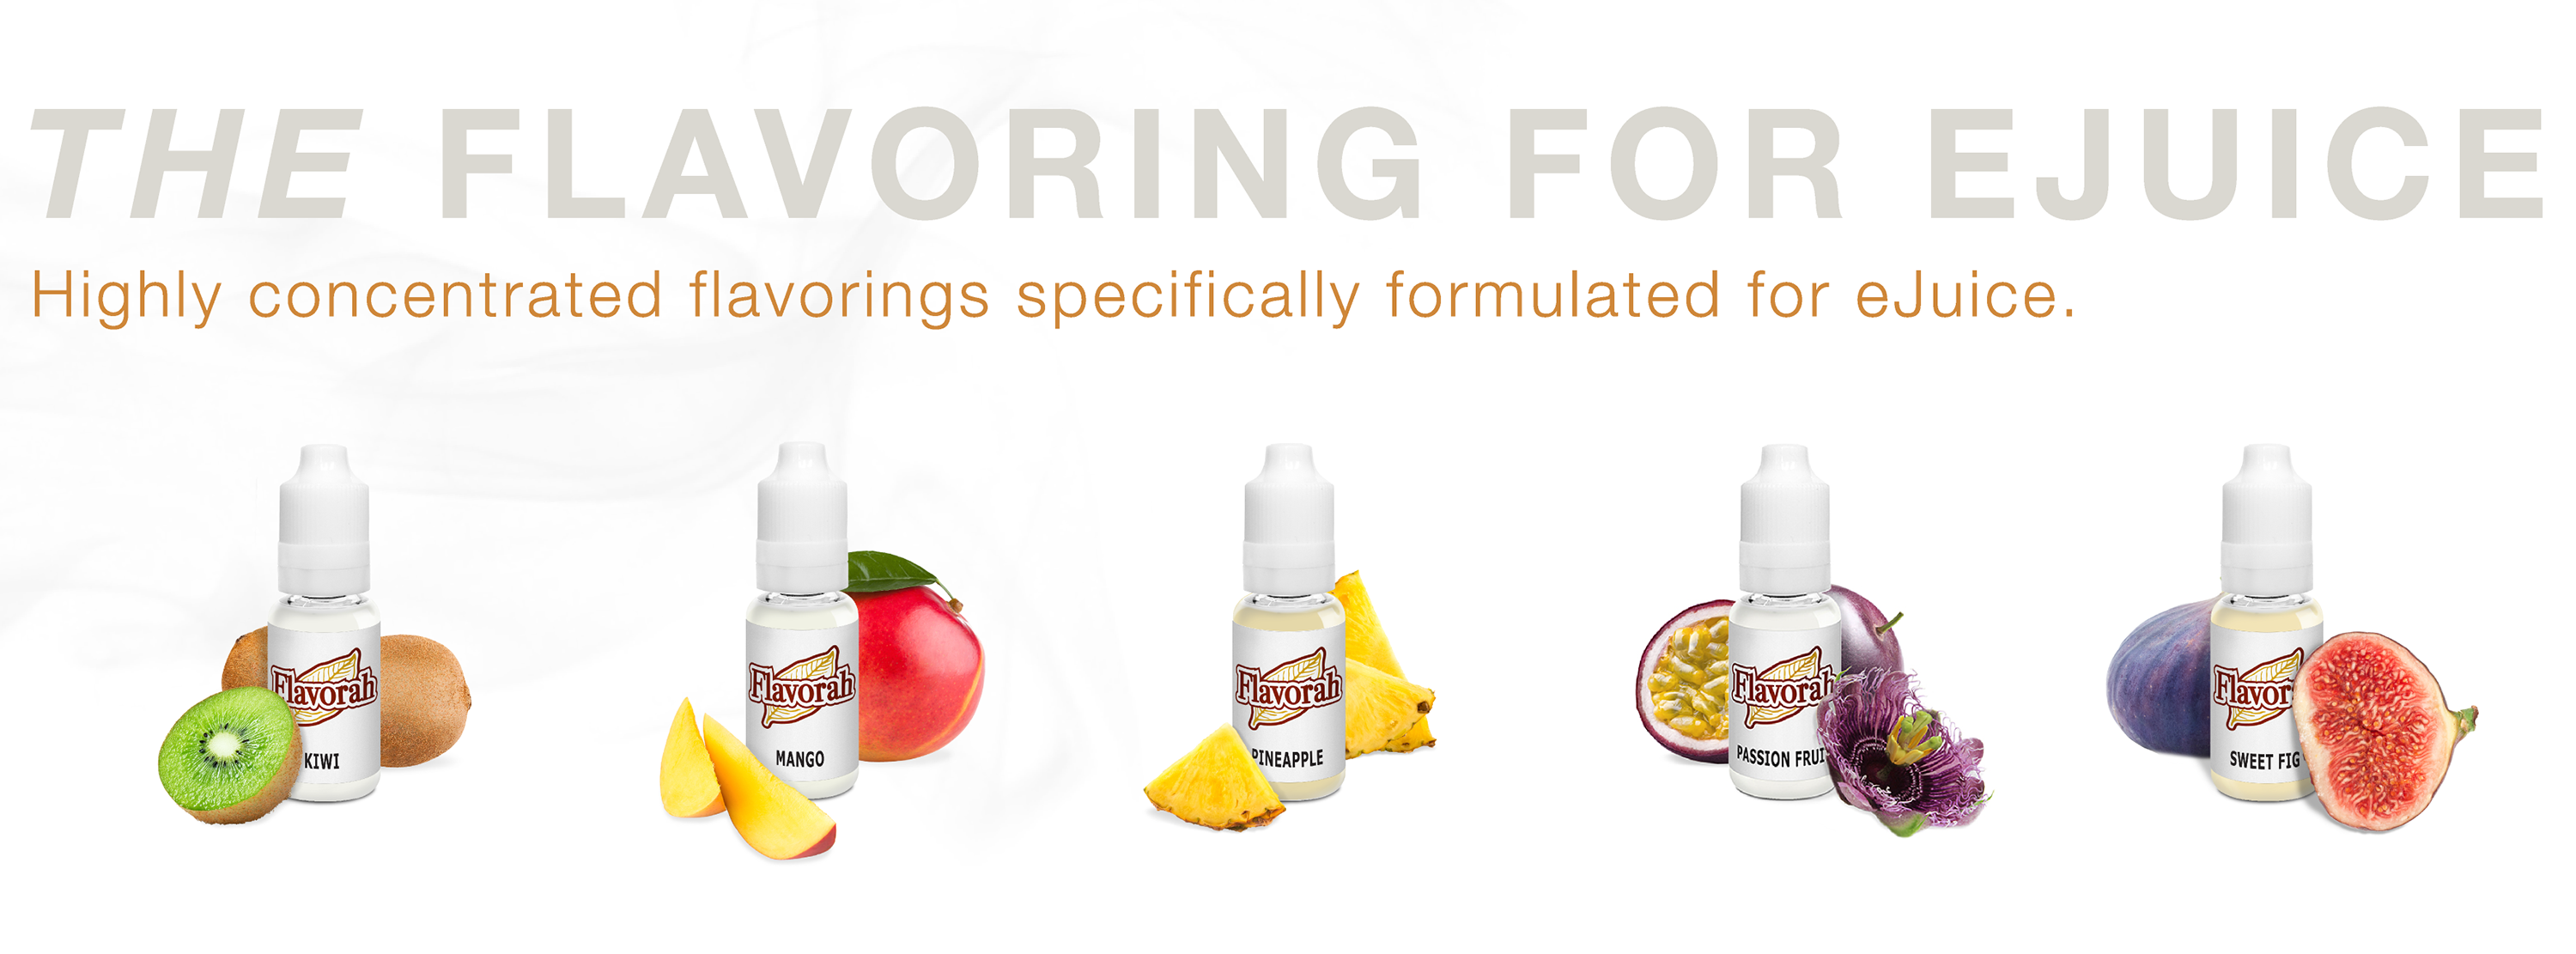 Flavorah - The Flavoring for eJuice - Tropical Flavors - Highly concentrated flavorings specifically formulated for eJuice.